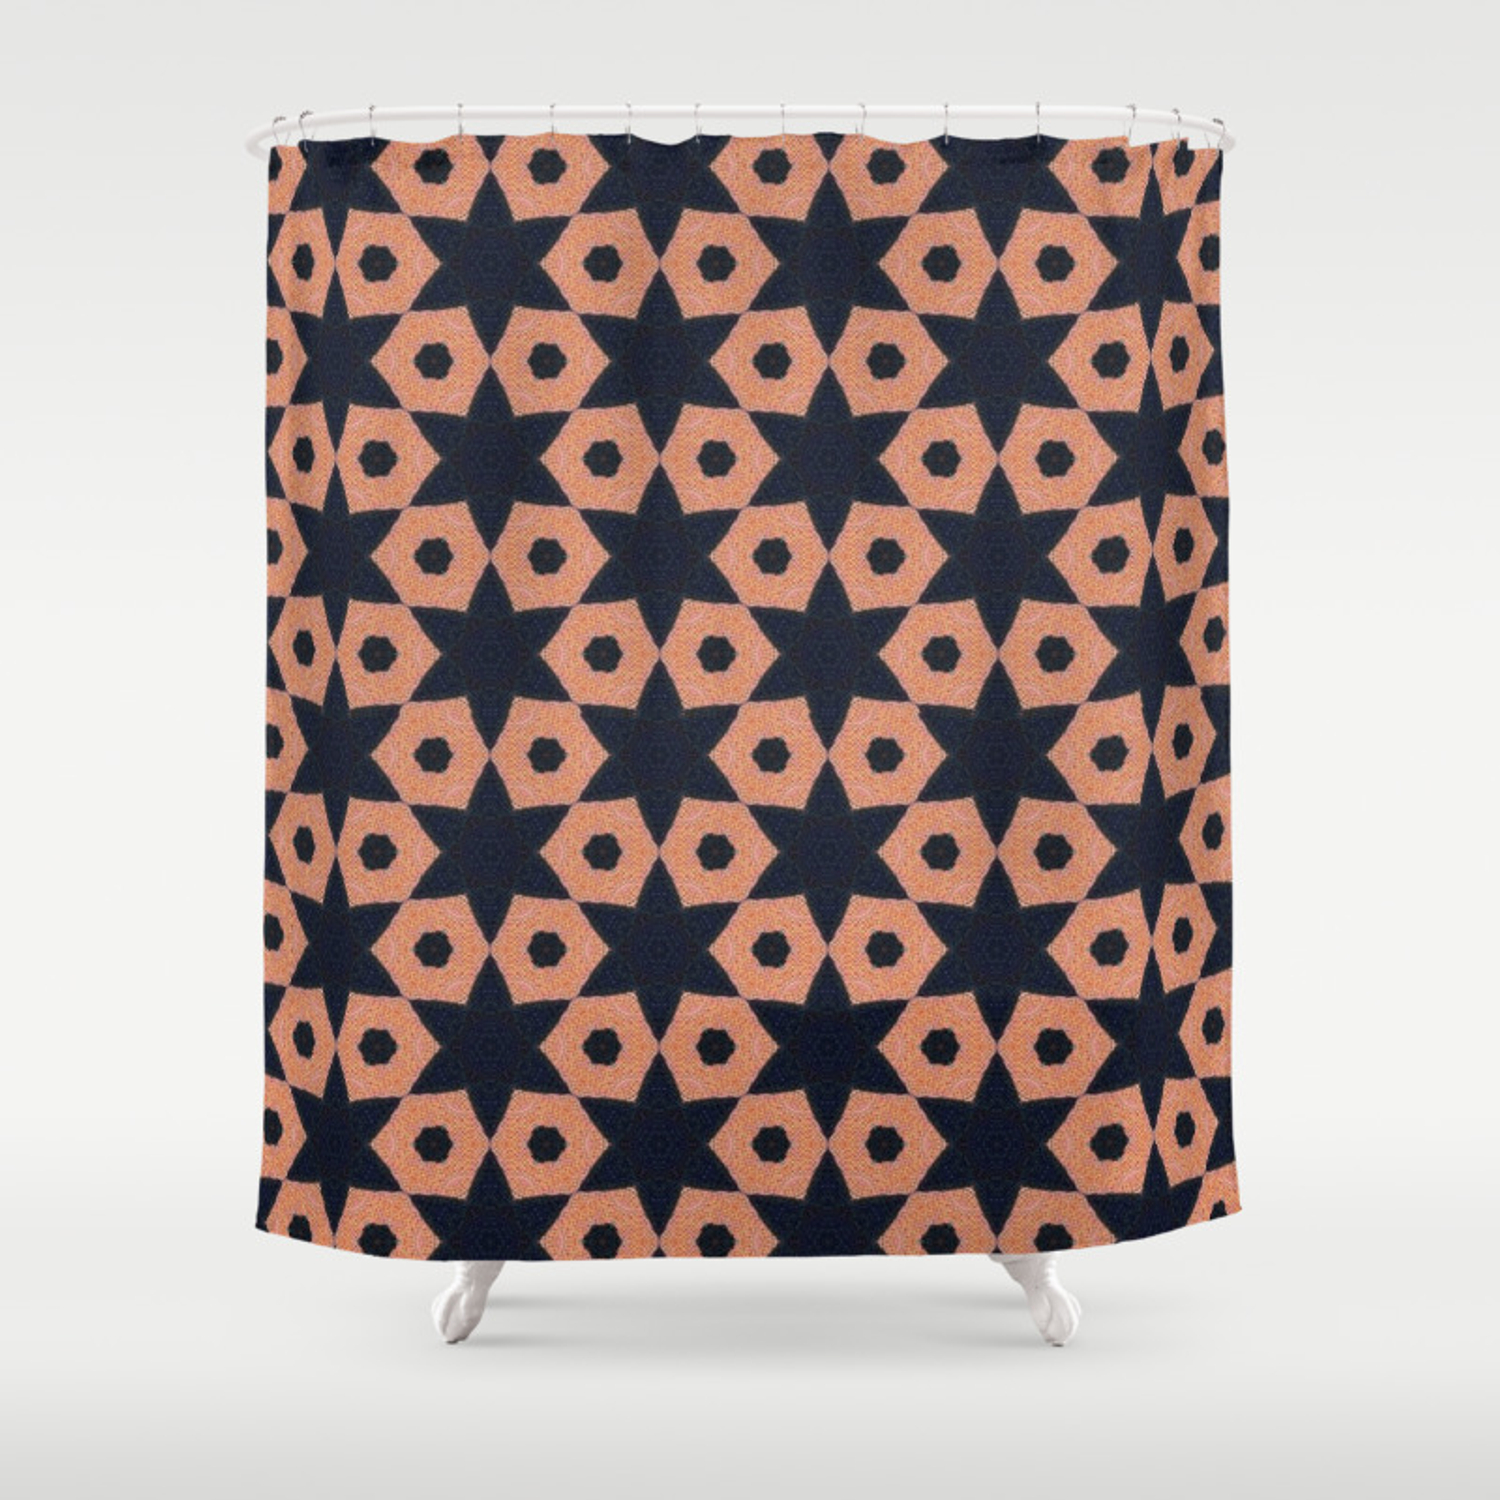 Corail And Black Fabric Shower Curtain